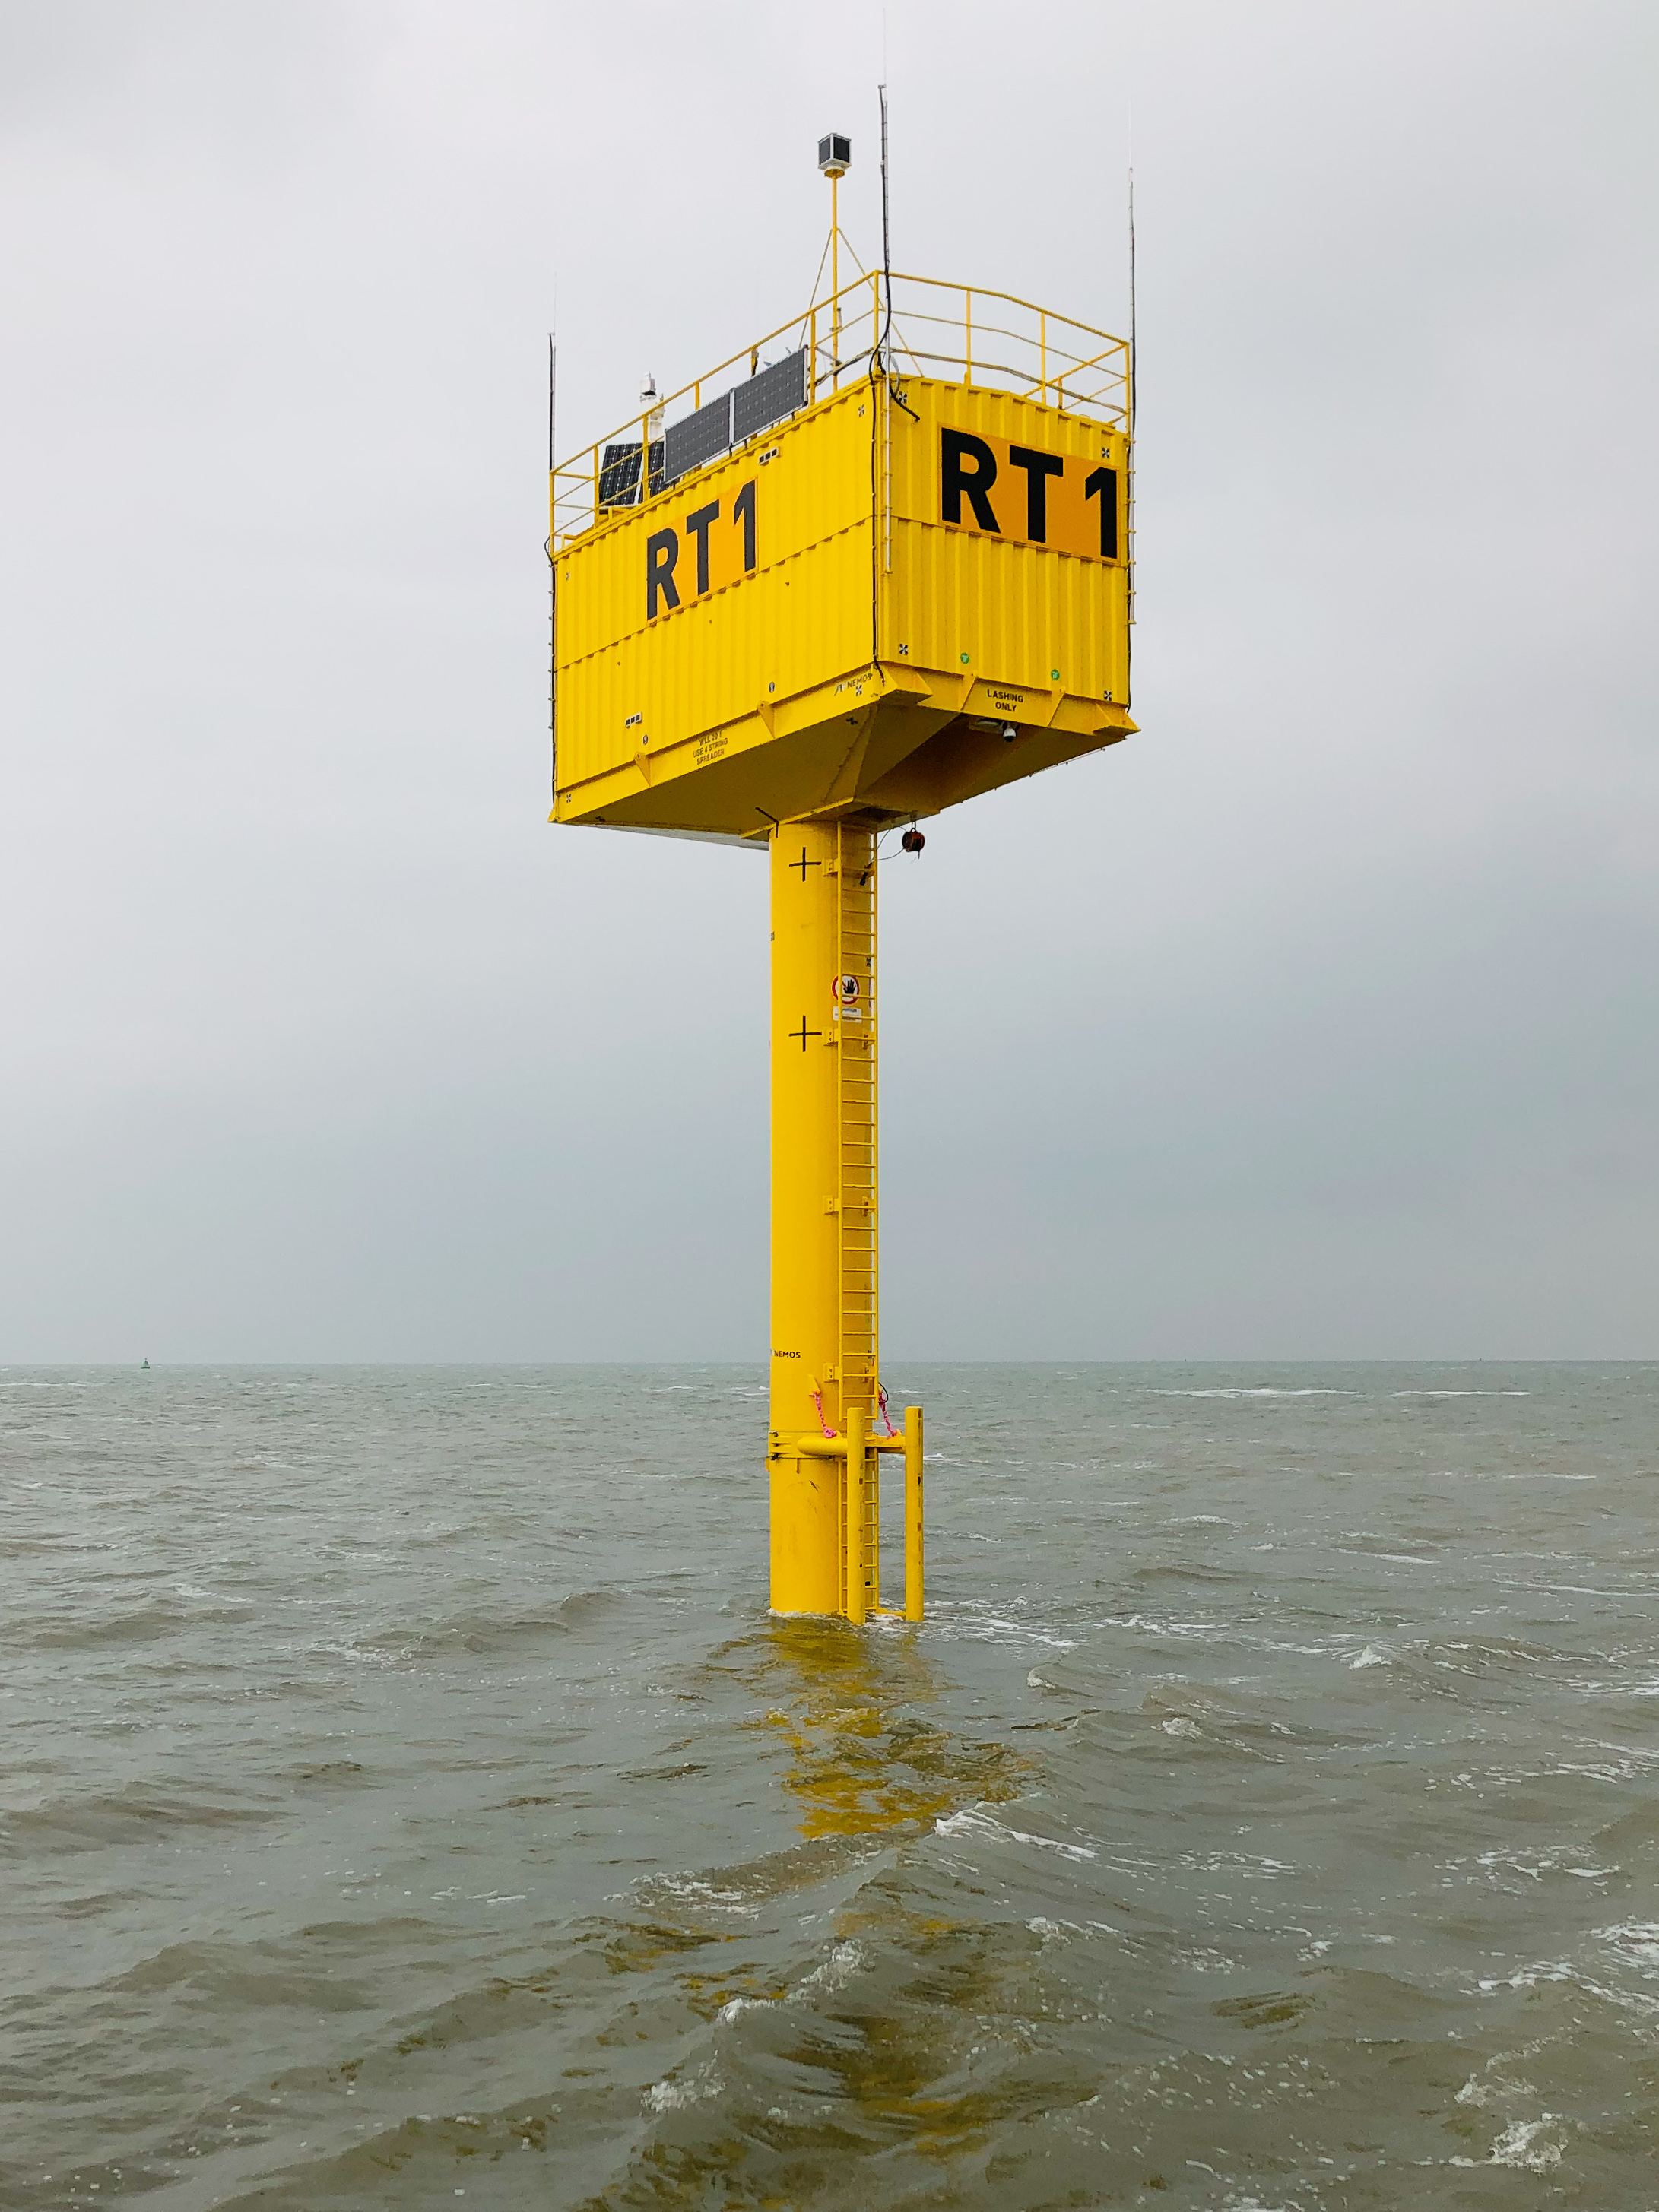 - NEMOS is delighted to announce the completion of the installation and commissioning works for the Ostend Research Tower, located 500m off the coast of Oostende. Last week, the final secondary steel components and topside research container were installed by HERBOSCH-KIERE with the support of DECO and NOORDZEE KRANEN. In addition, the research area east to the tower was marked with buoys by VLOOT in preparation for the installation of the 2019 NEMOS Wave Energy Converter (WEC) Prototype.The final commissioning works at the PORT OF OOSTENDE was coordinated by NEMOS and utilised several local companies. NEMOS would like to thank the participants for the experienced, professional support received. Special thanks go to IDP SHIPJARD, MULTITECH, ENGIE FABRICOM and the PORT OF OOSTENDE.NEMOS is now looking forward to the transfer of ownership of the Research Tower infrastructure to the West Flanders Development Agency – POM West-Vlaanderen. The maritime platform will then serve as a laboratory, used to perform tests designed to accelerate the innovation and development of blue energy and the broader blue economy. As one of the first key users, NEMOS will use the Research Tower as a control and monitoring hub for WEC trials this summer.- - -NEMOS is verheugd om de afronding van de installatiewerken en de ingebruikname van de Ostend Research Tower mee te delen. In de afgelopen dagen zijn de secundaire staalcomponenten en het bovenste onderzoeksplatform geïnstalleerd door HERBOSCH-KIERE met de steun van DECO en NOORDZEE KRANEN. Simultaan aan deze installatiewerken is het onderzoeksgebied ten oosten van de toren gemarkeerd met boeien door VLOOT. Dit ter voorbereiding op de installatie van het afmeersysteem voor de 2019 NEMOS Wave Energy Converter (WEC) Prototype.Na een aantal intensieve weken met werken rond de inbedrijfstelling in de PORT OF OOSTENDE zou NEMOS graag zijn dank uiten aan de deelnemende lokale bedrijven en agentschappen voor de geweldige en professionele ondersteuning. Deze dank gaat voornamelijk uit naar IDP SHIPJARD, MULTITECH, ENGIE FABRICOM en PORT OF OOSTENDE.Momenteel kijkt NEMOS uit naar de overdracht van de eigendomsrechten van de infrastructuur van de onderzoekstoren aan de West-Vlaamse onderzoek agentschap – POM West-Vlaanderen. Volgens POM zal het maritieme platform dienen als een 'living lab' om testen uit te voeren om de innovatie en ontwikkeling van blauwe energie en de bredere blauwe economie te versnellen. Als één van de eerste belangrijke gebruikers zal NEMOS de onderzoekstoren gebruiken als het besturings- en monitoringcentrum voor de WEC-tests die deze zomer van start gaan.Pictures: https://www.nemos.org/rt1media